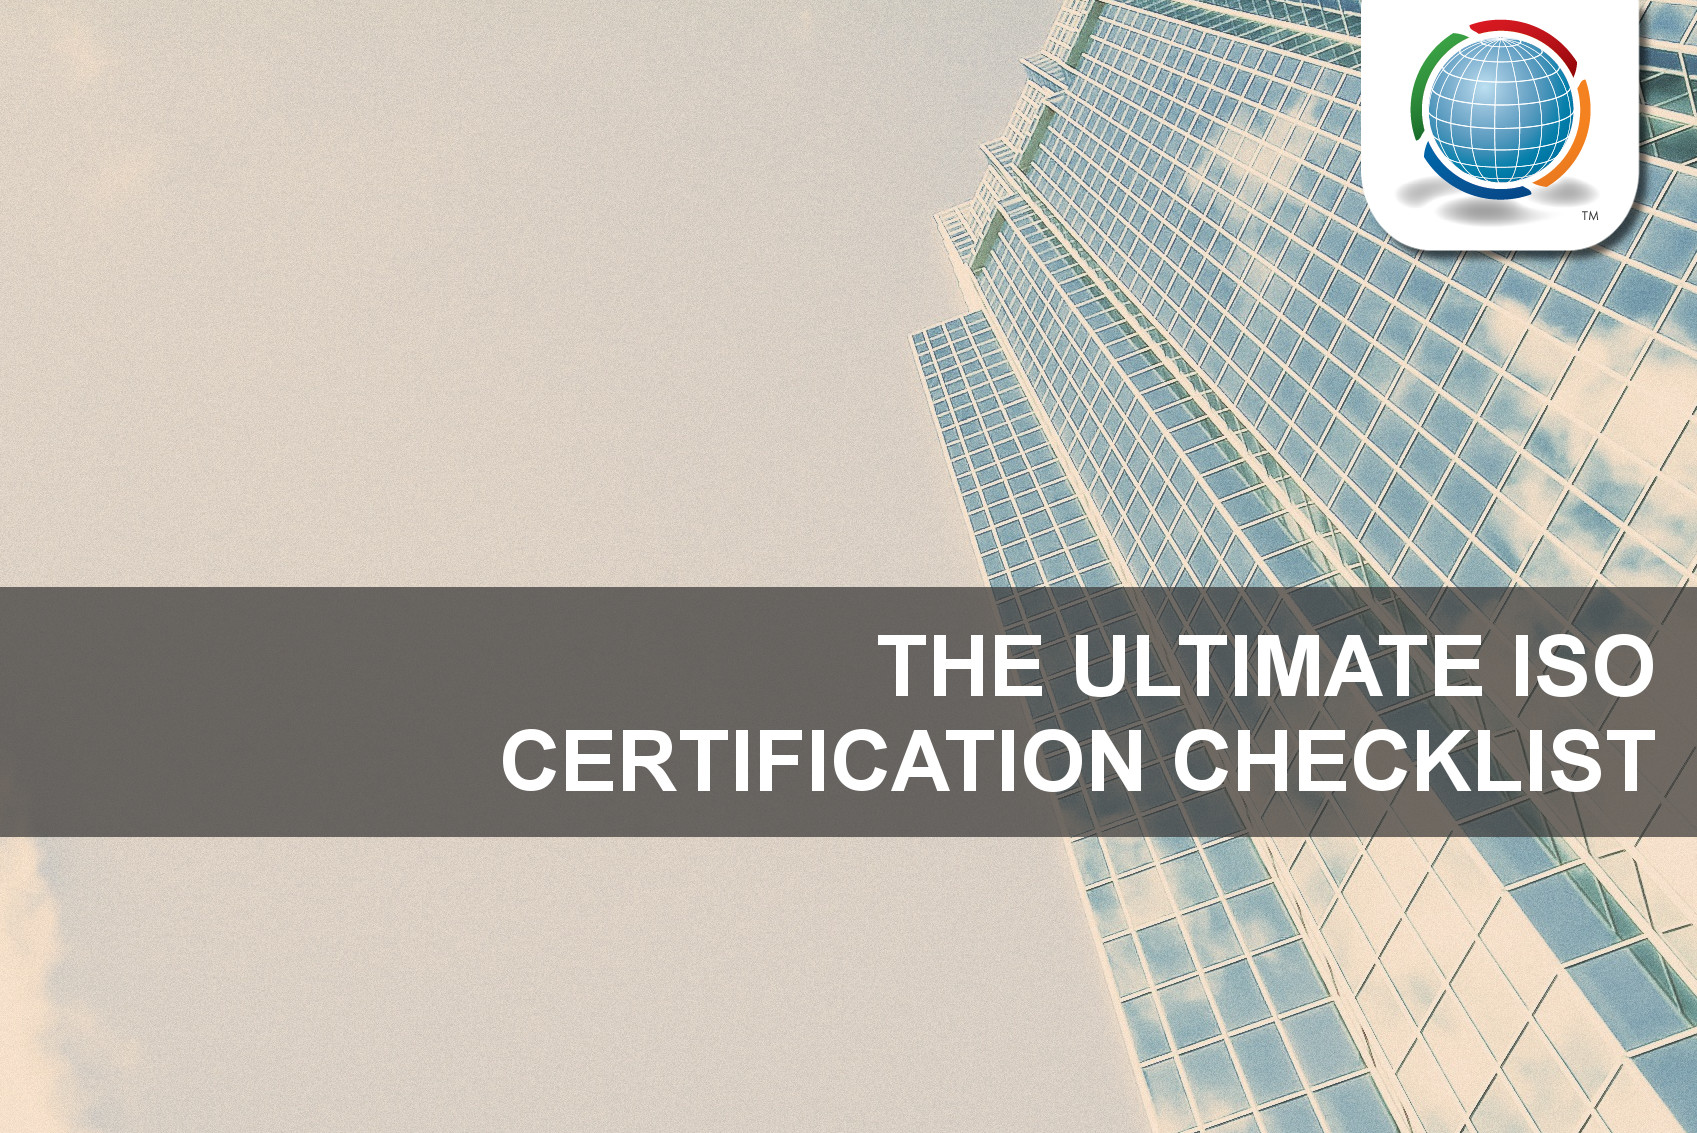 Ultimate ISO Certification Checklist